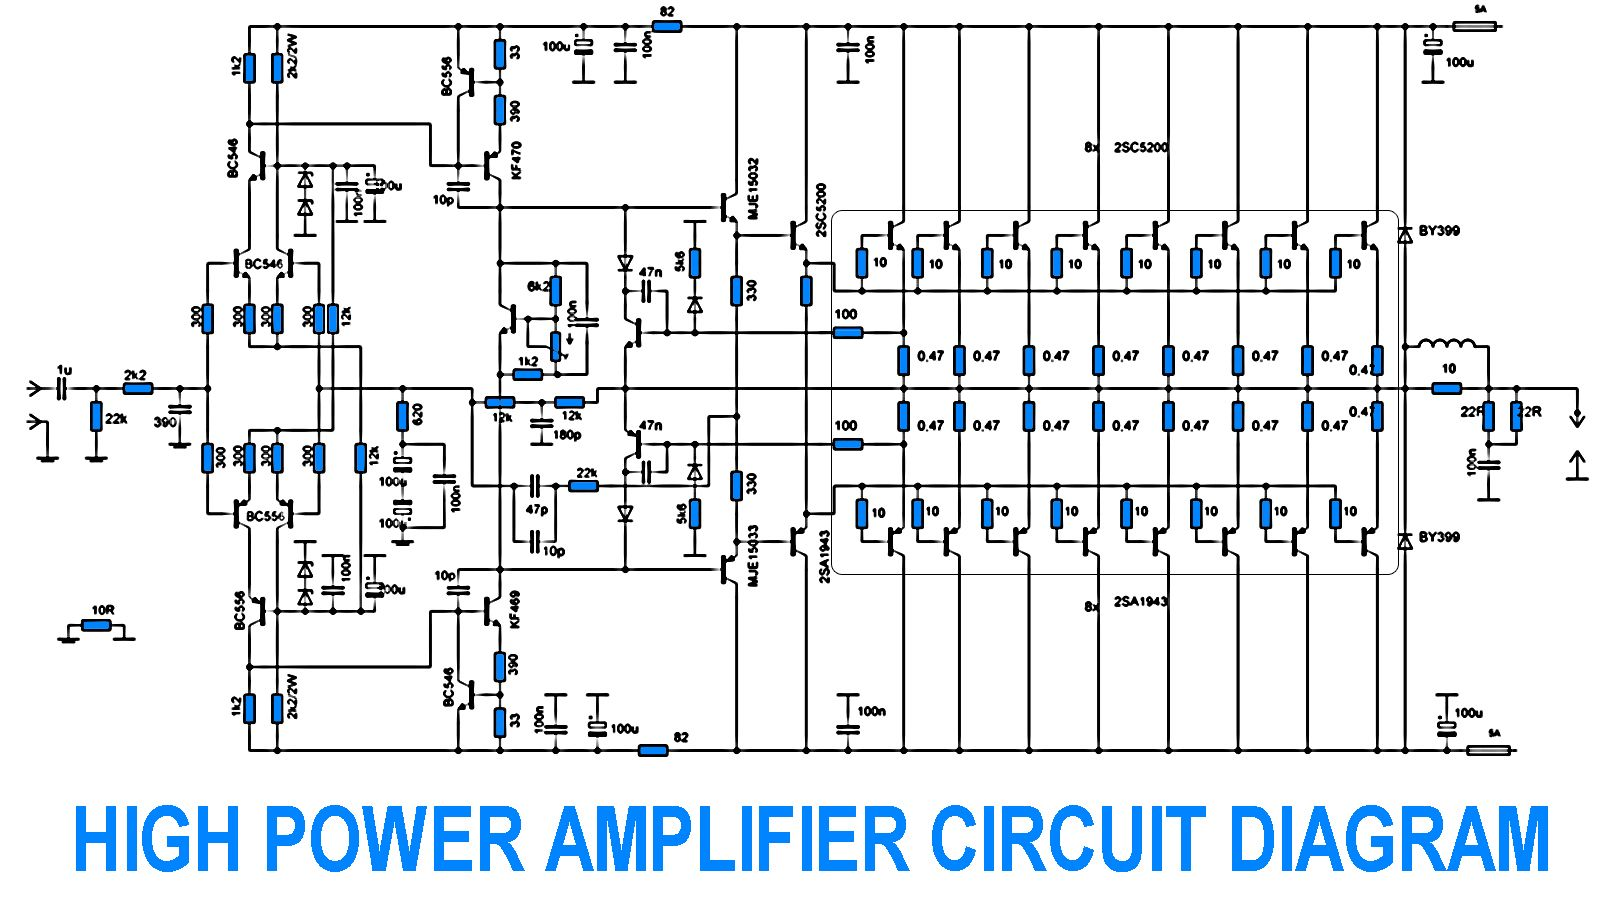 700w Power Amplifier With 2sc5200 2sa1943 Other Projects In 2018 Simple Circuit Diagrams Of Electronics Electrical Diy